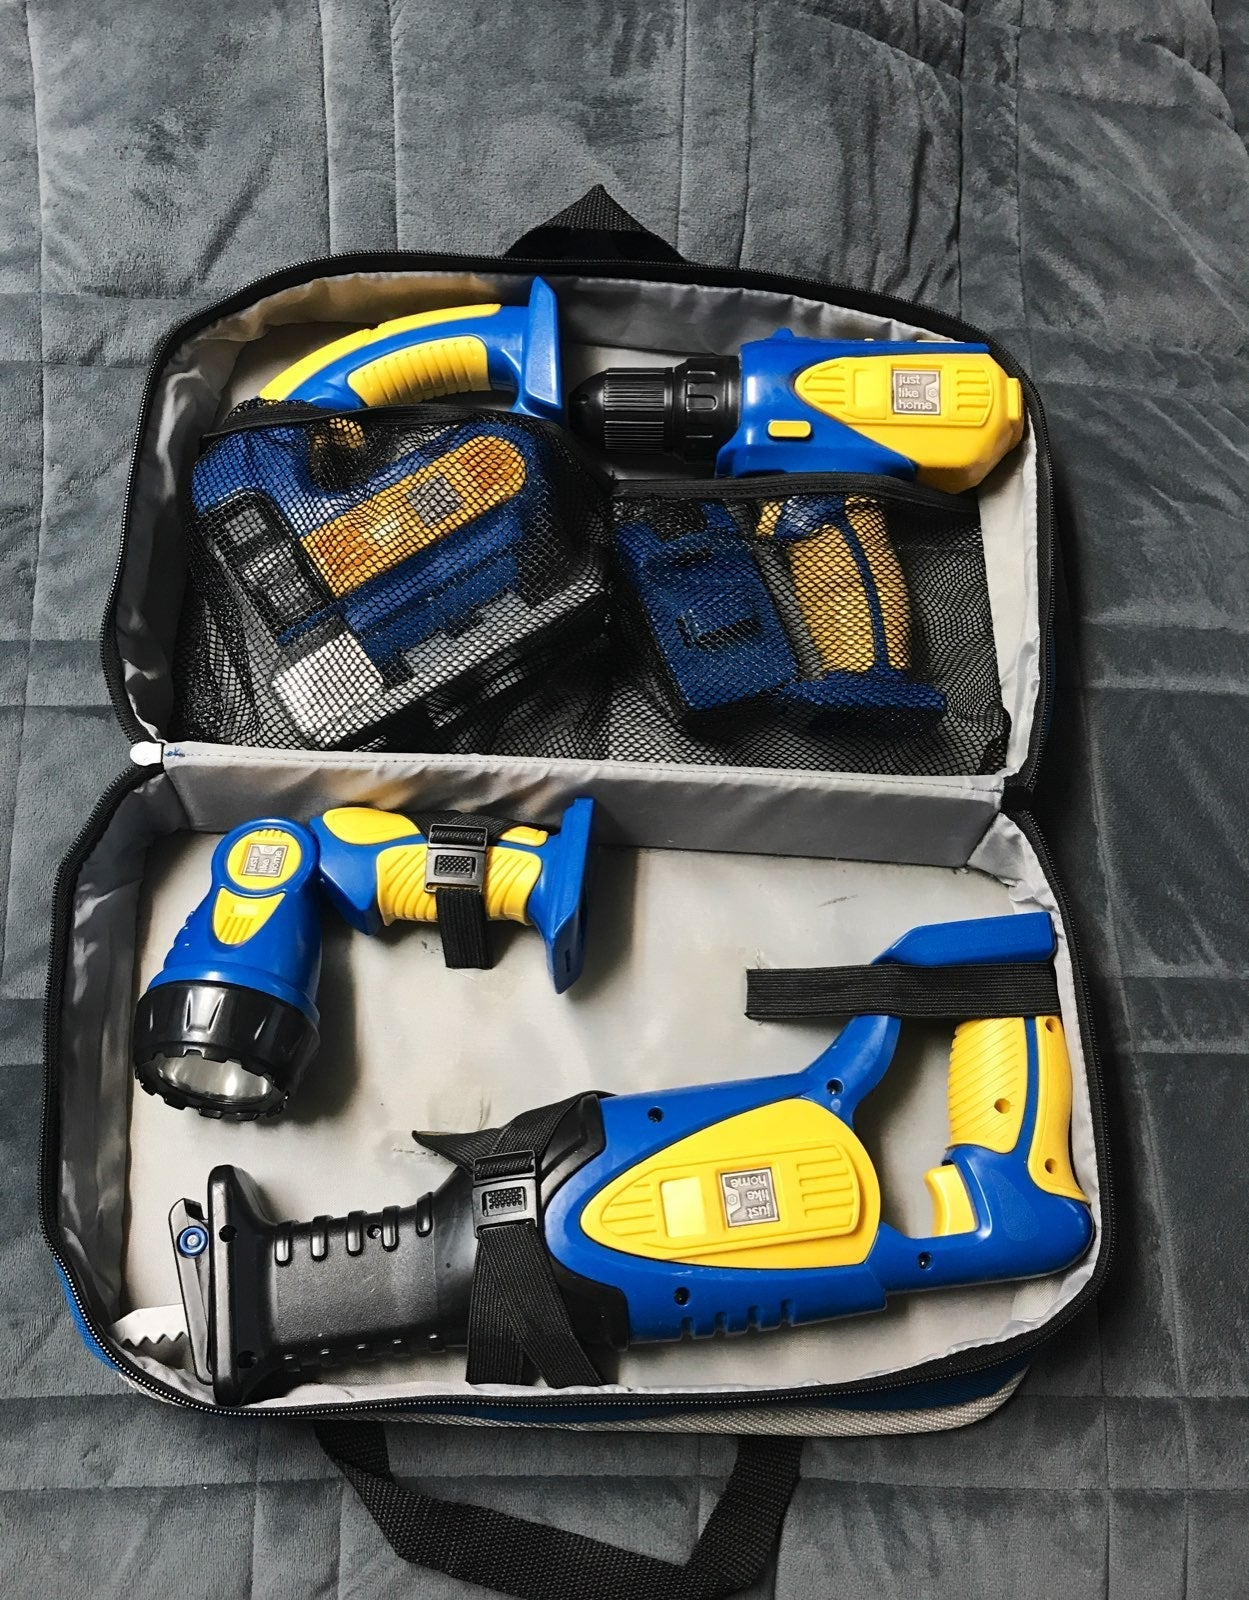 Just like home toy tool kit